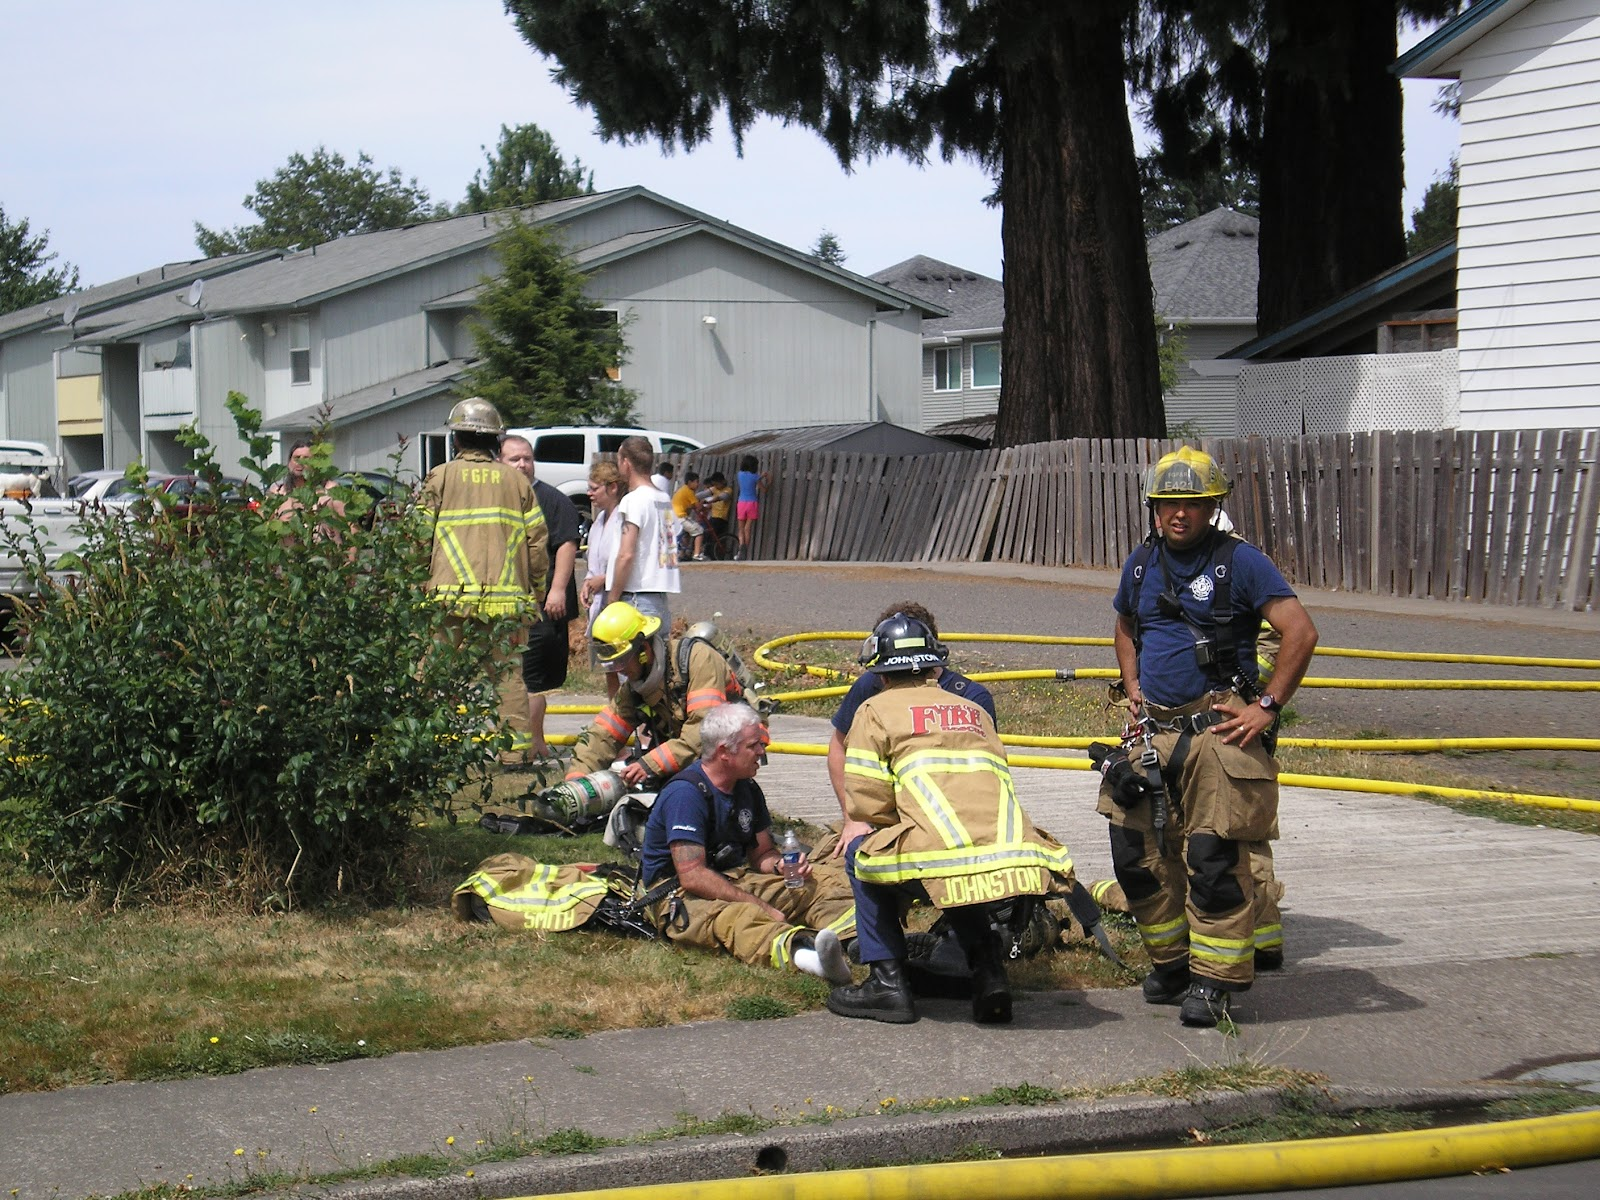 Forest Grove Backyard Burning : Forest Grove Firefighters tend to one of their own, Fire Captain Joe